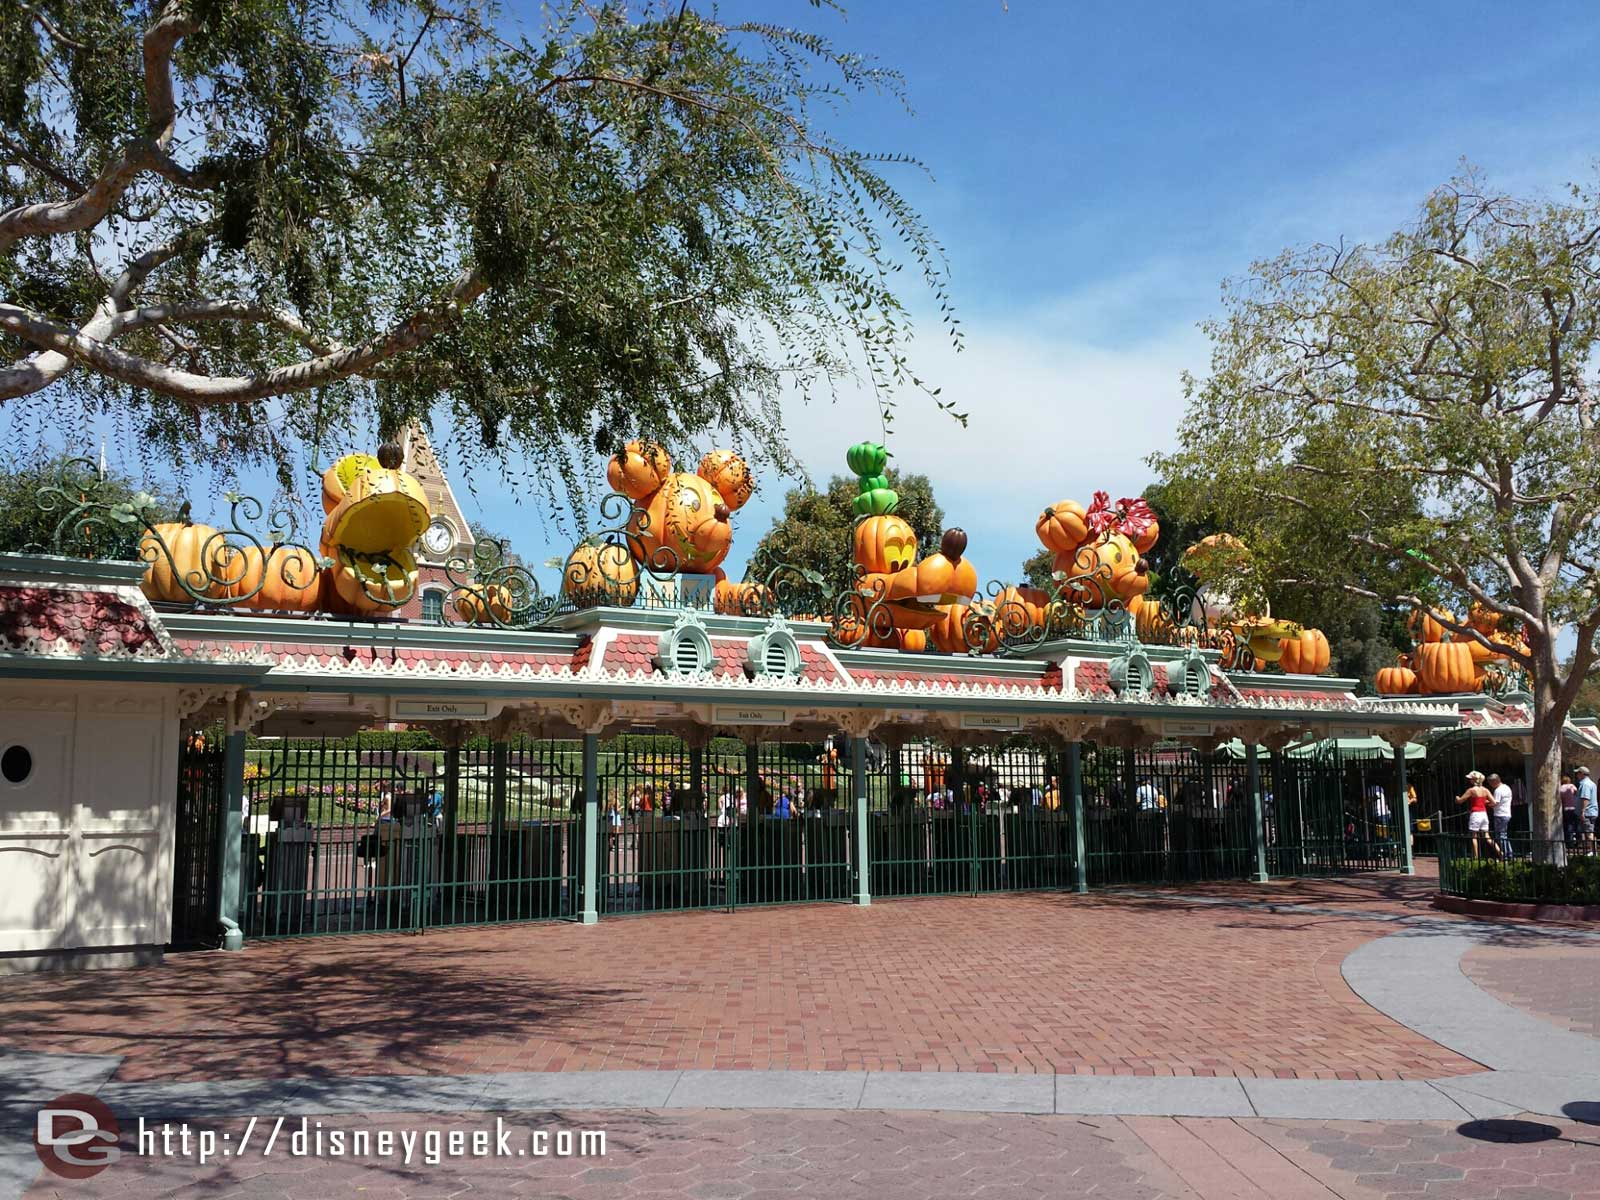 Tge fab 5 in pumpkins greet you at #Disneyland again